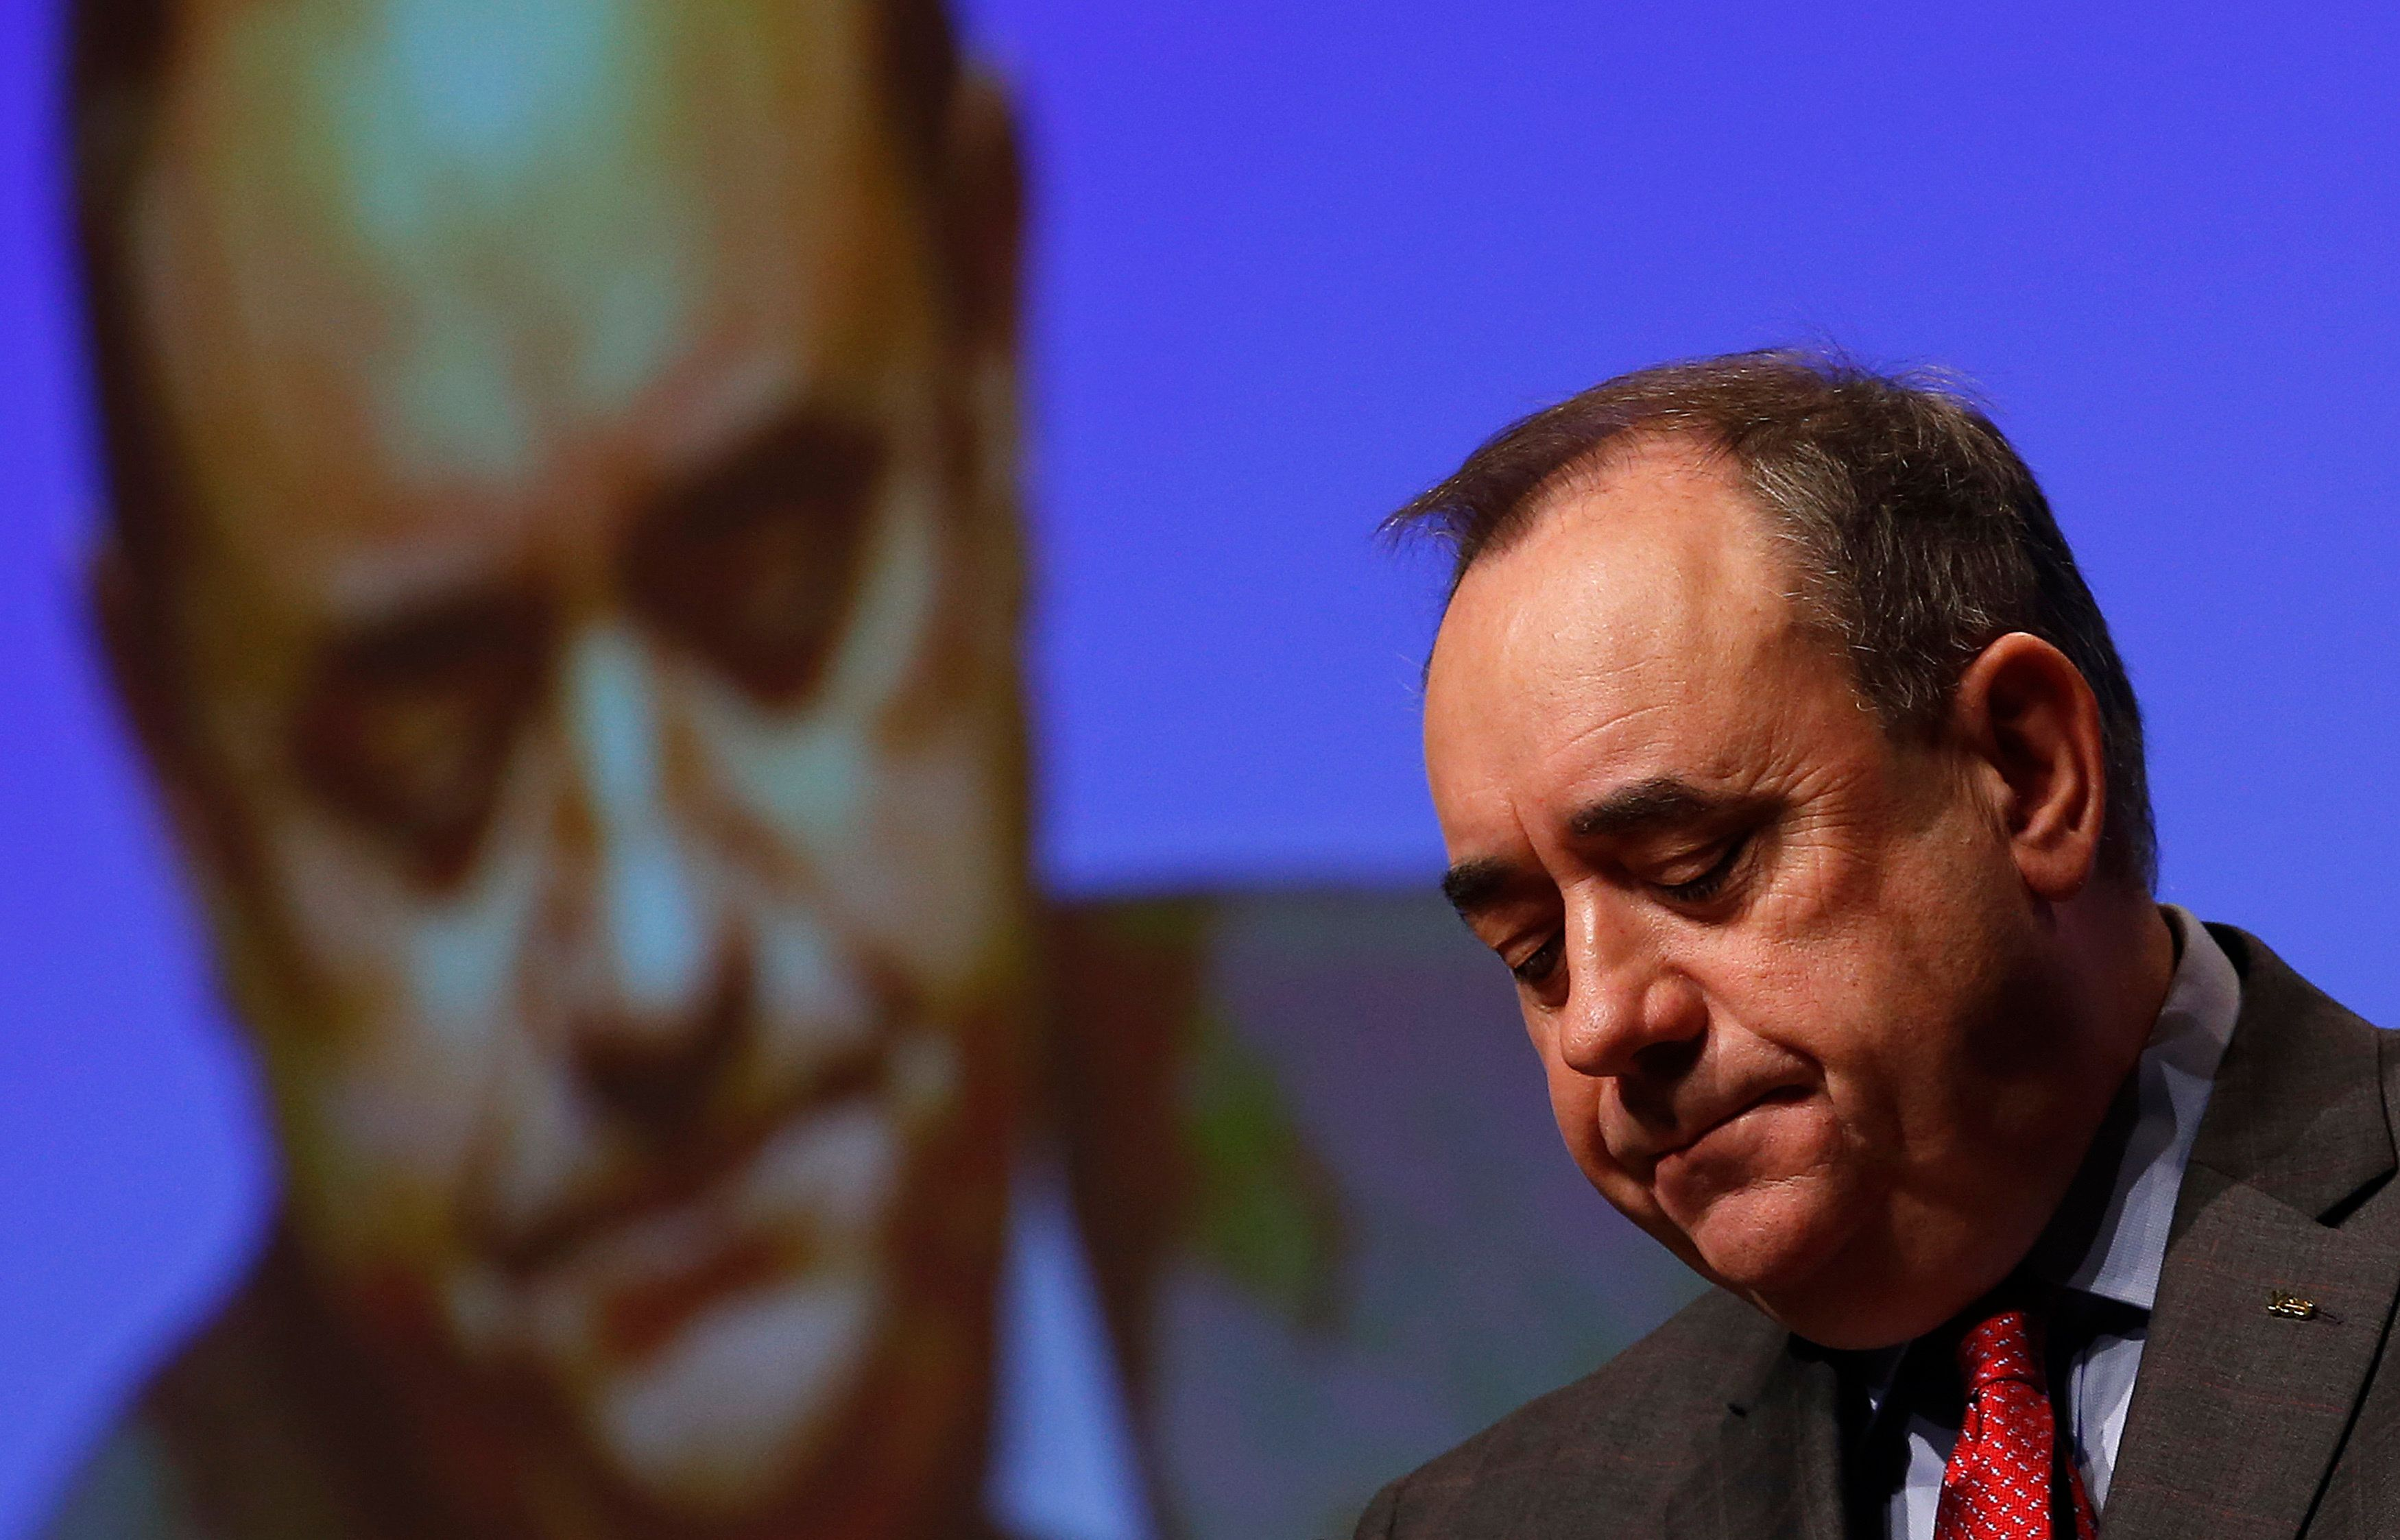 Alex Salmond Resigns From SNP Over Allegations Of Sexual